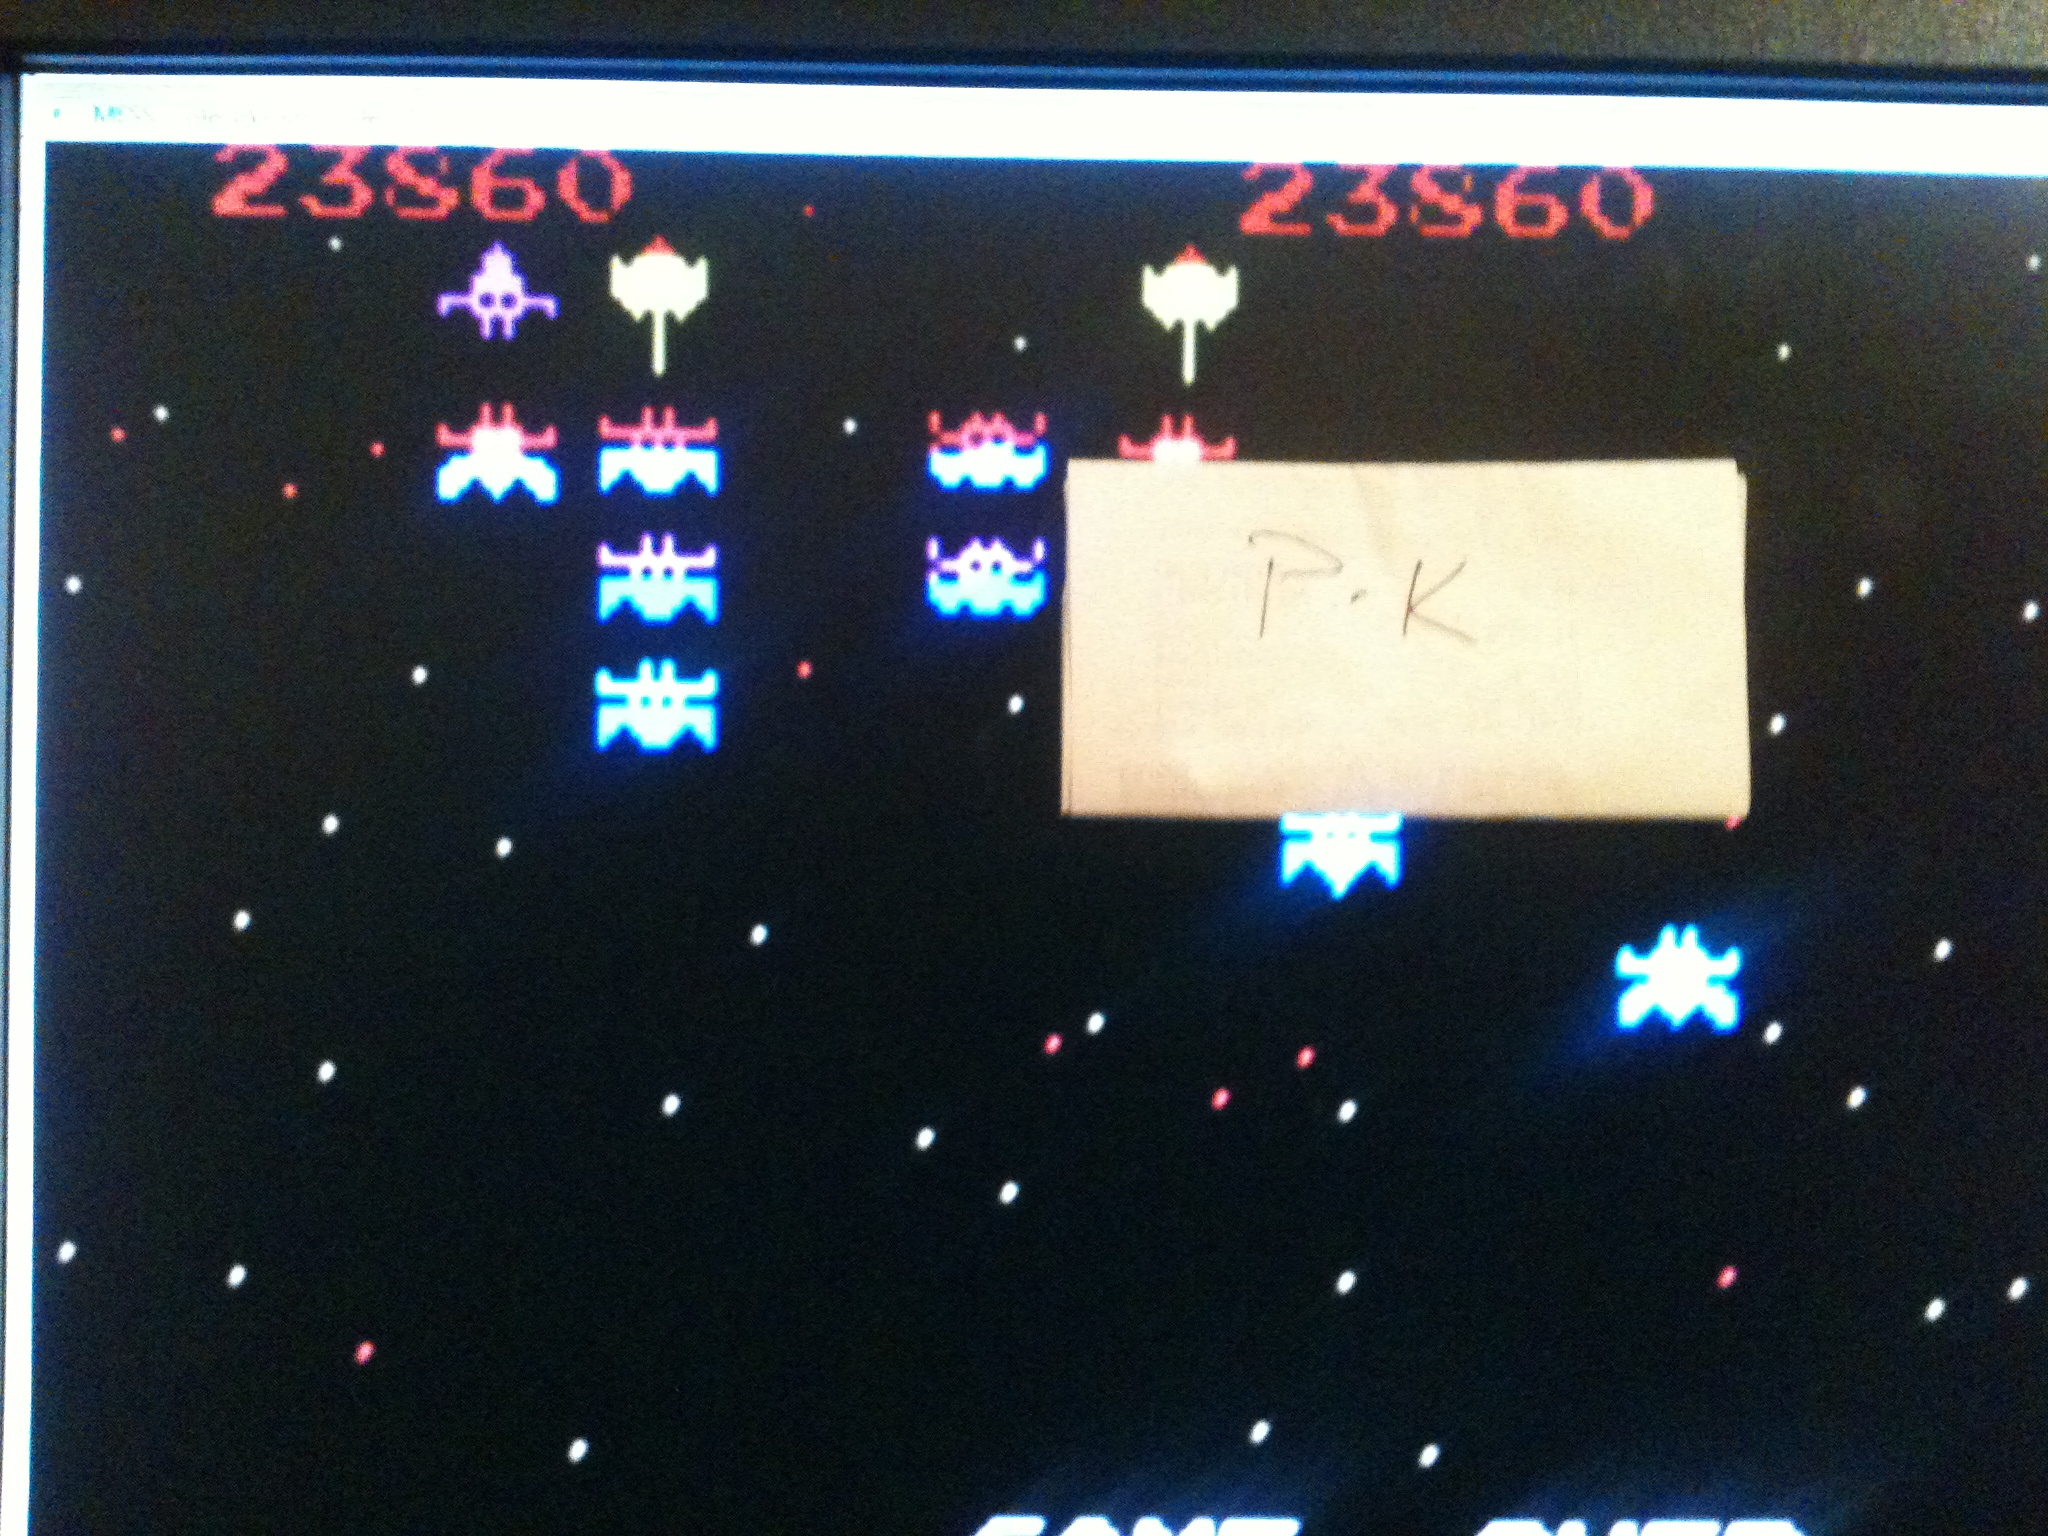 kernzy: Galaxian: Novice (Colecovision Emulated) 23,860 points on 2015-02-01 19:56:50